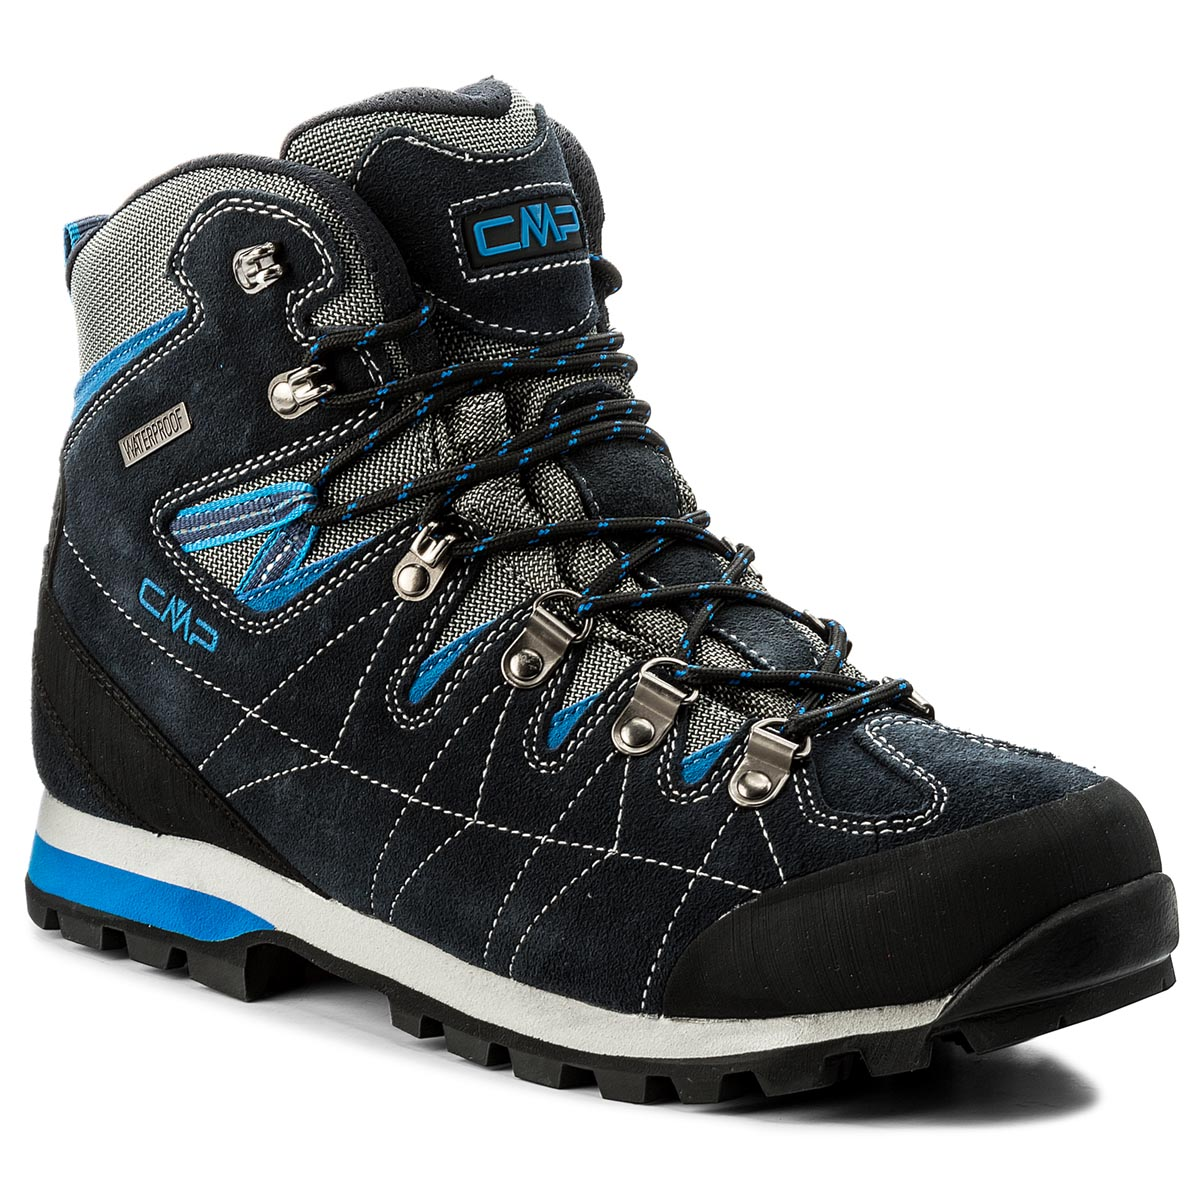 Trekkings CMP - Arietis Trekking Shoes Wp 38Q9987 Black/Blue N950